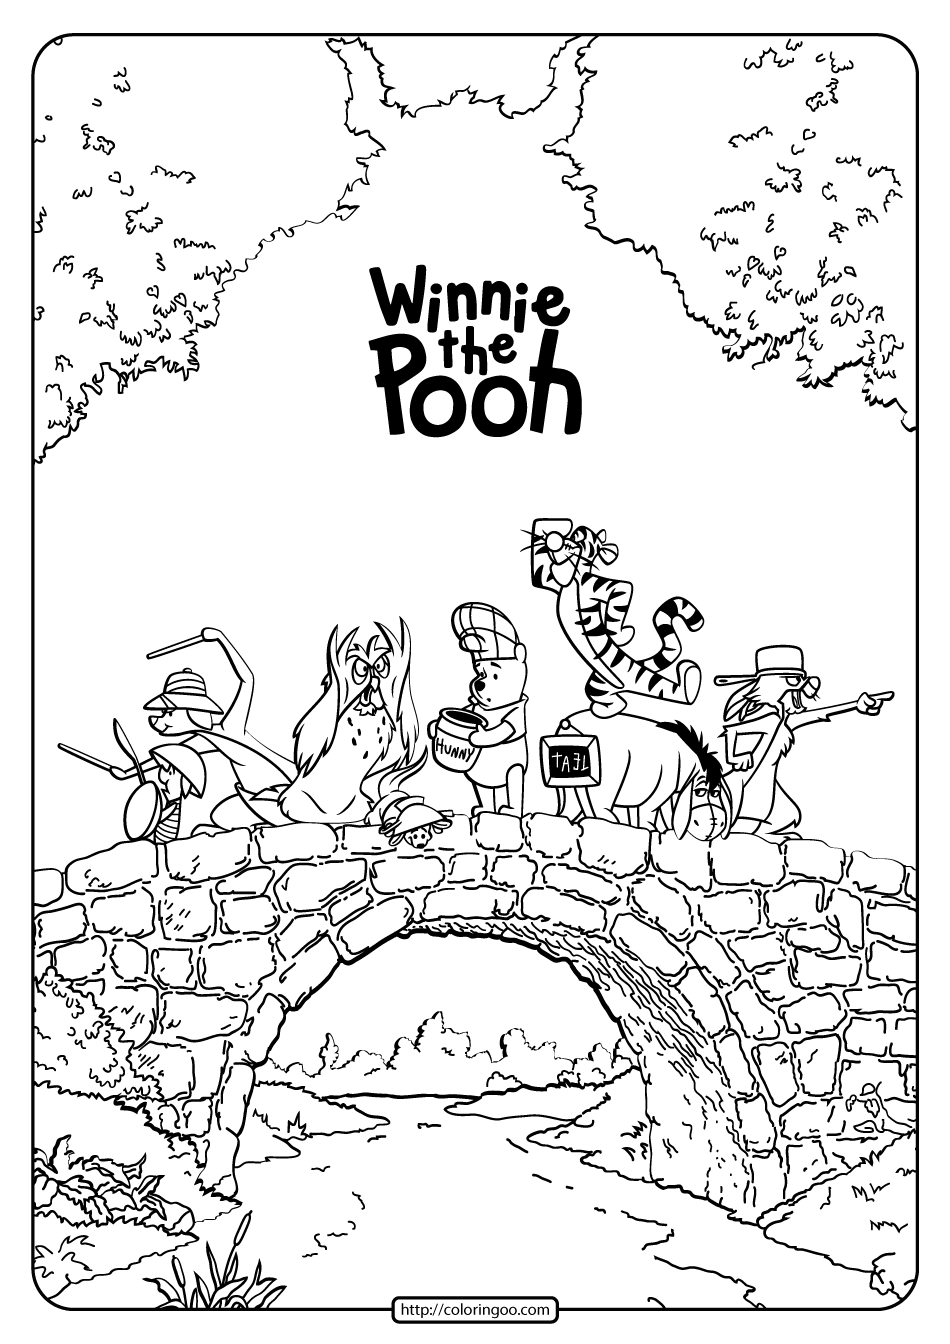 Tigger And Piglet Raking Leaves Coloring Page | H & M Coloring Pages | 1344x950